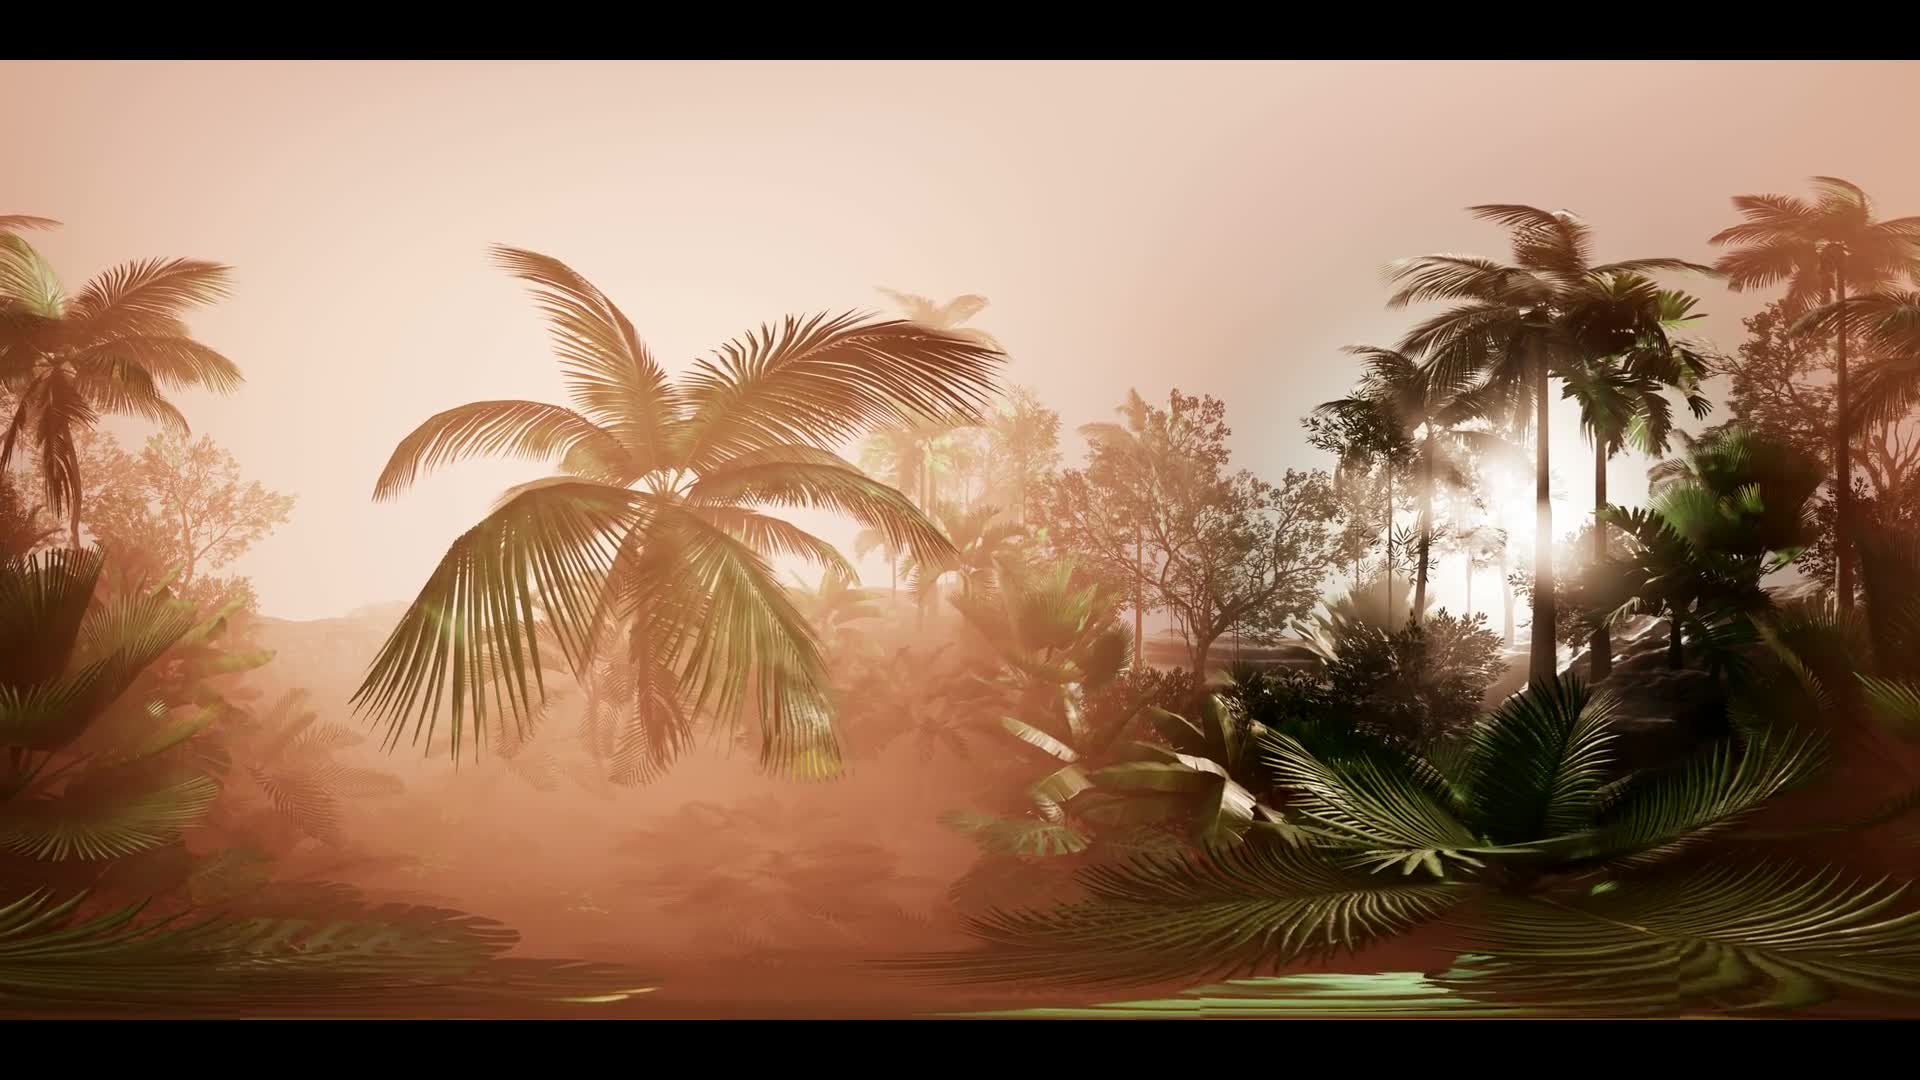 vr 360 camera moving shot of a lush tropical jungle in a sun with coconuts, palm trees, and amazing natural lighting at fog. ready for use in virtual reality